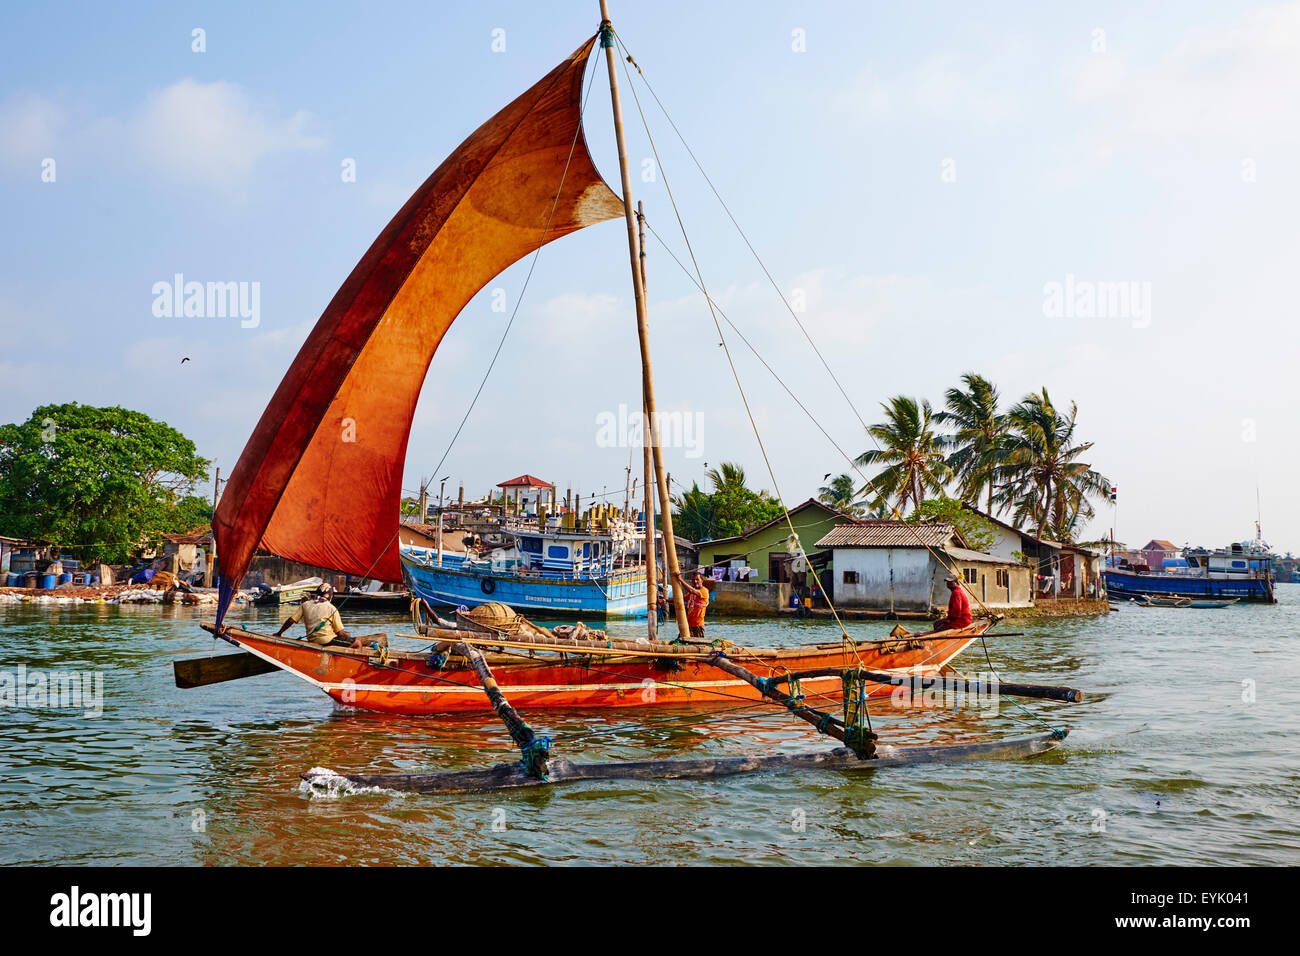 Sri Lanka, Western Province, Negombo, catamaran, Traditional Fishing Boat - Stock Image